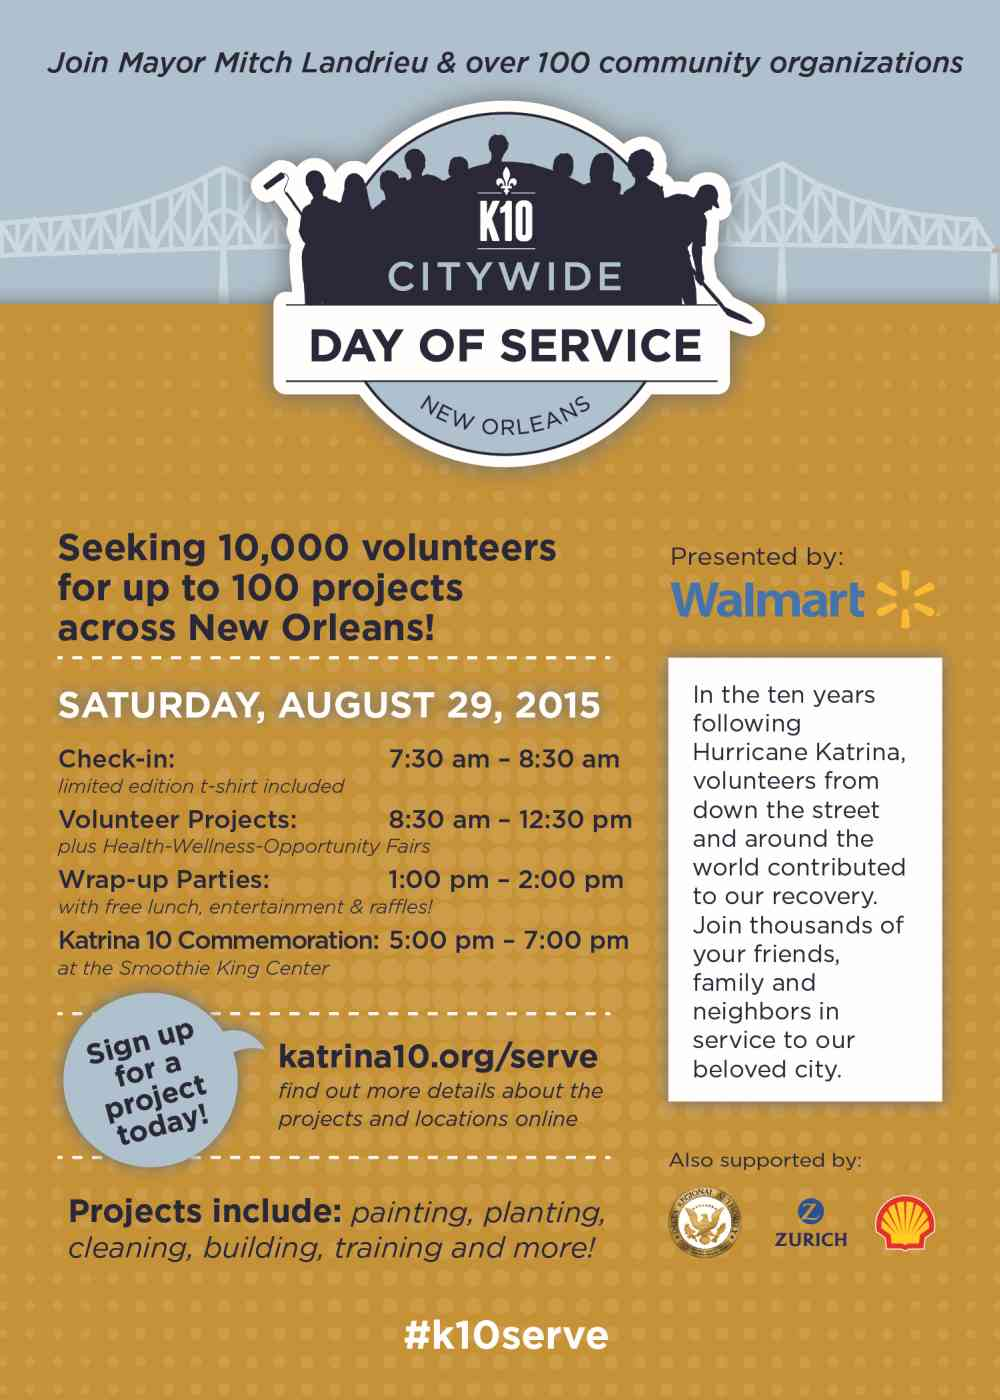 K10 Day of Service Flyer